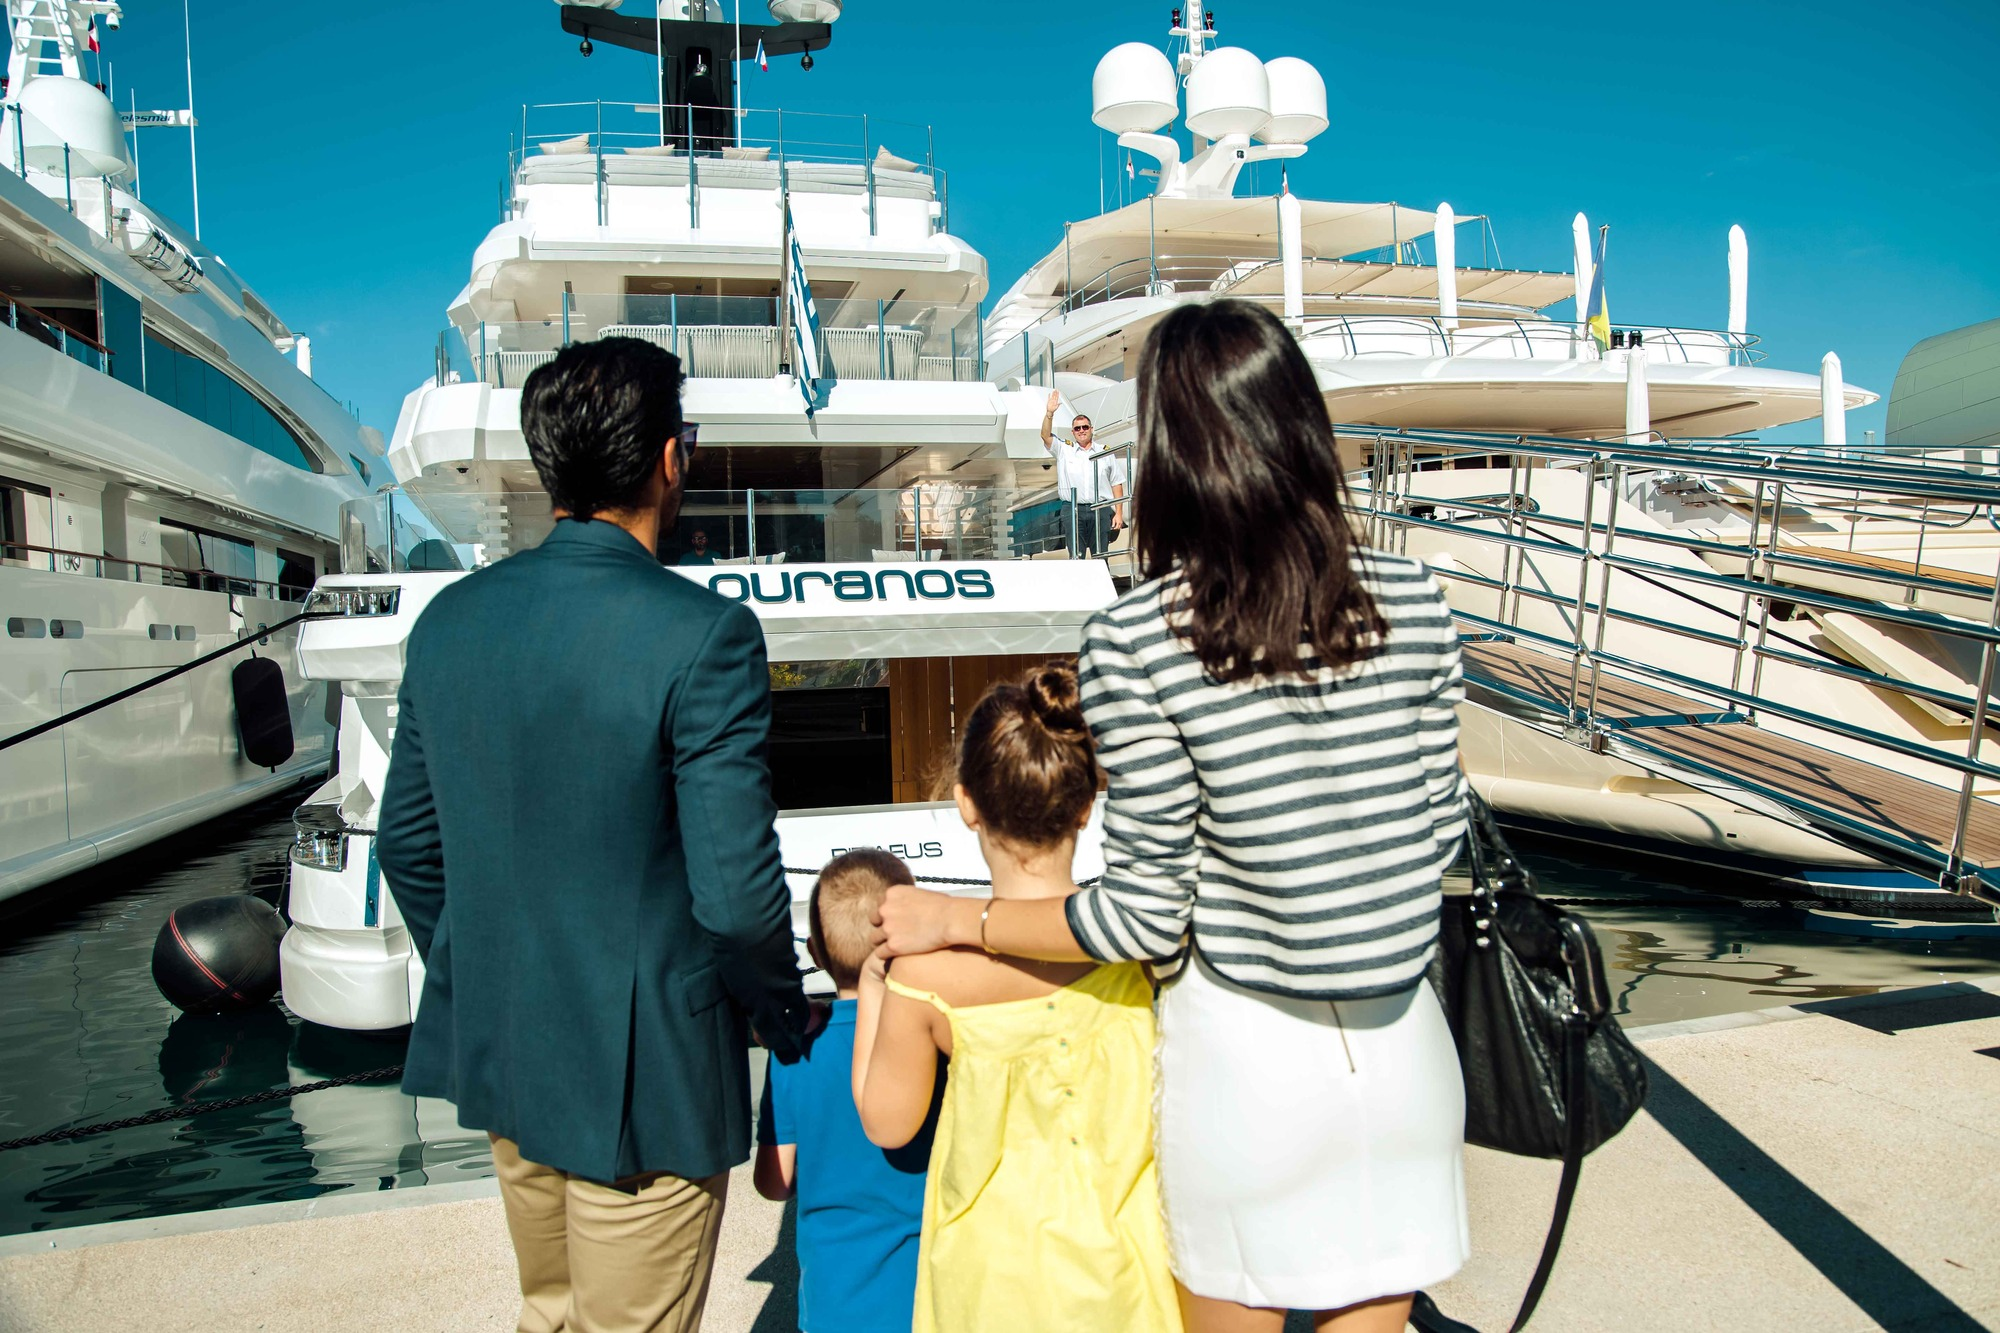 Motor Yacht OURANOS Arrival By Admiral Yachts